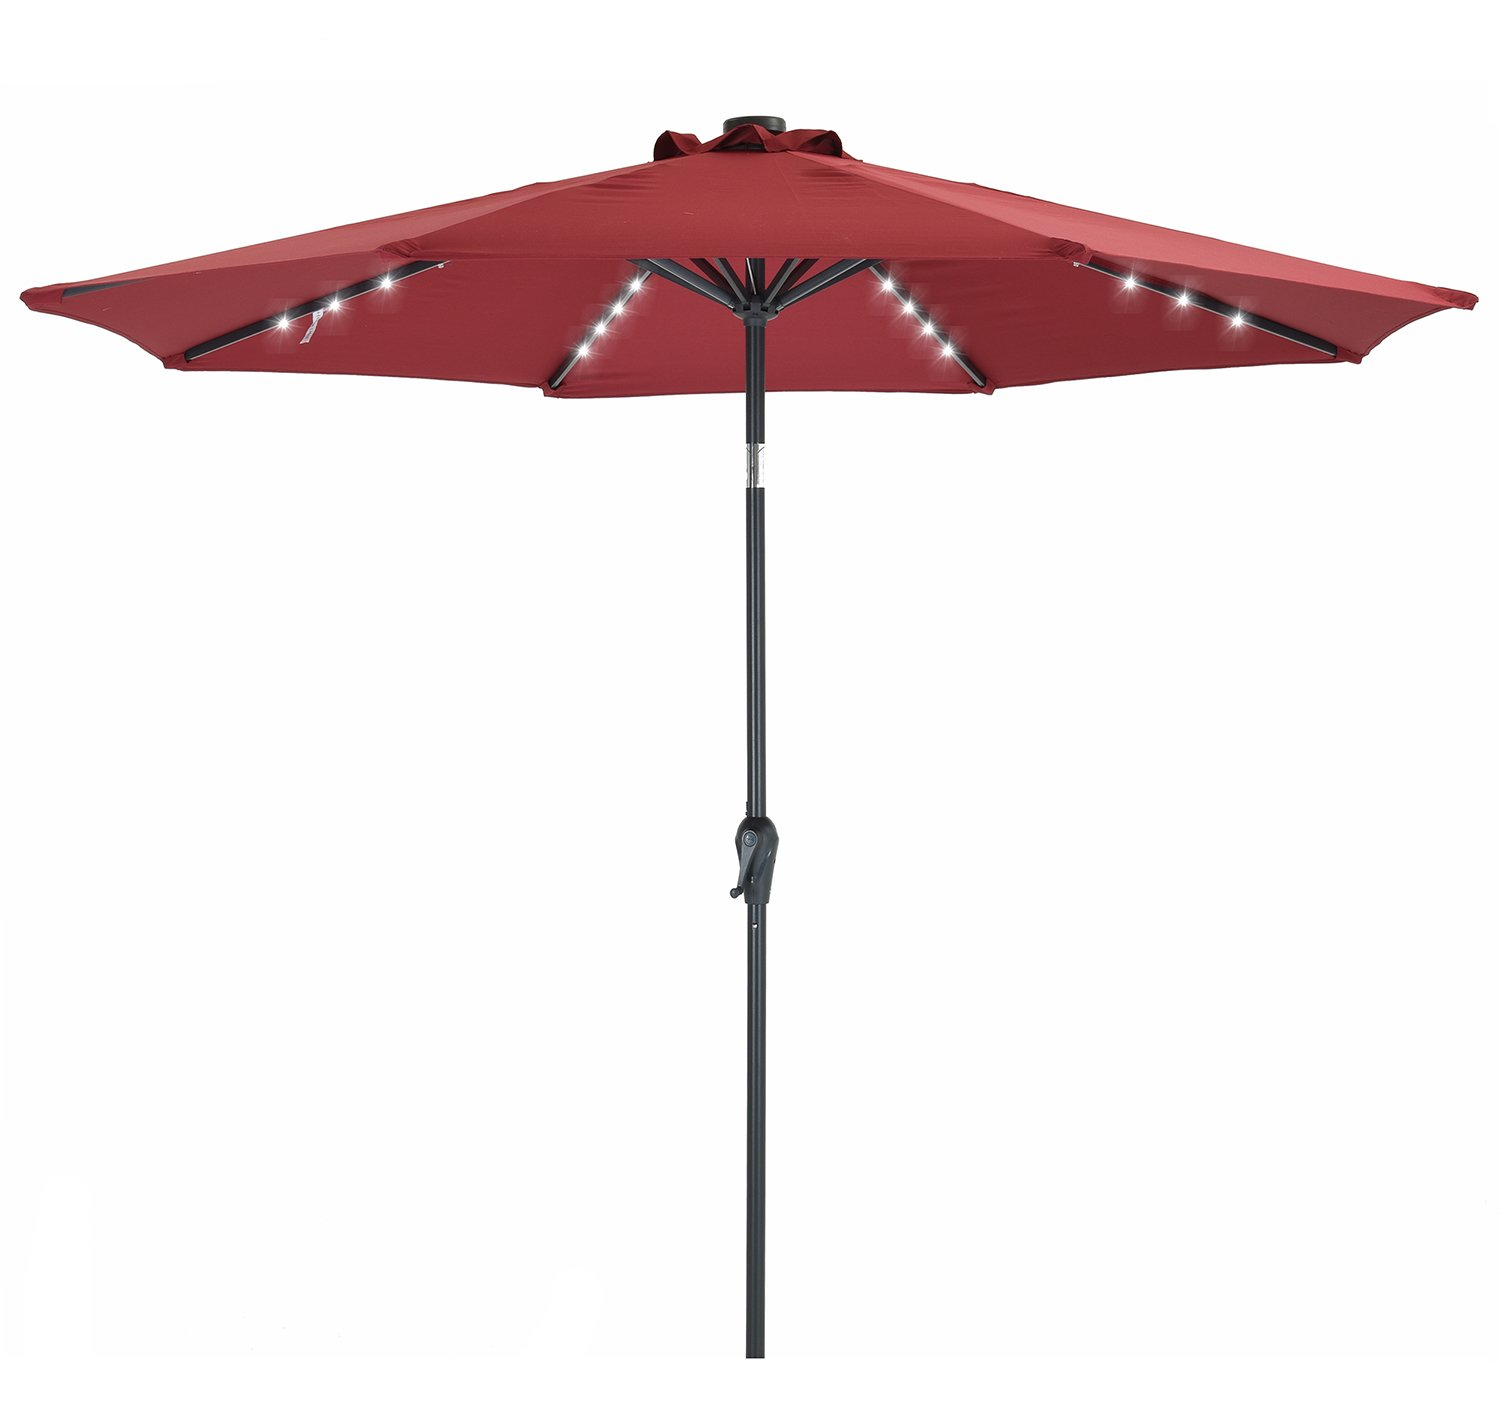 Patio Watcher 9 FT Patio LED Umbrella Solar Powered Outdoor Umbrella, 40 LED with 2 Charge Modes(Solar and Adaptor),250GSM Fabric with Push Button Tilt and Crank,Red